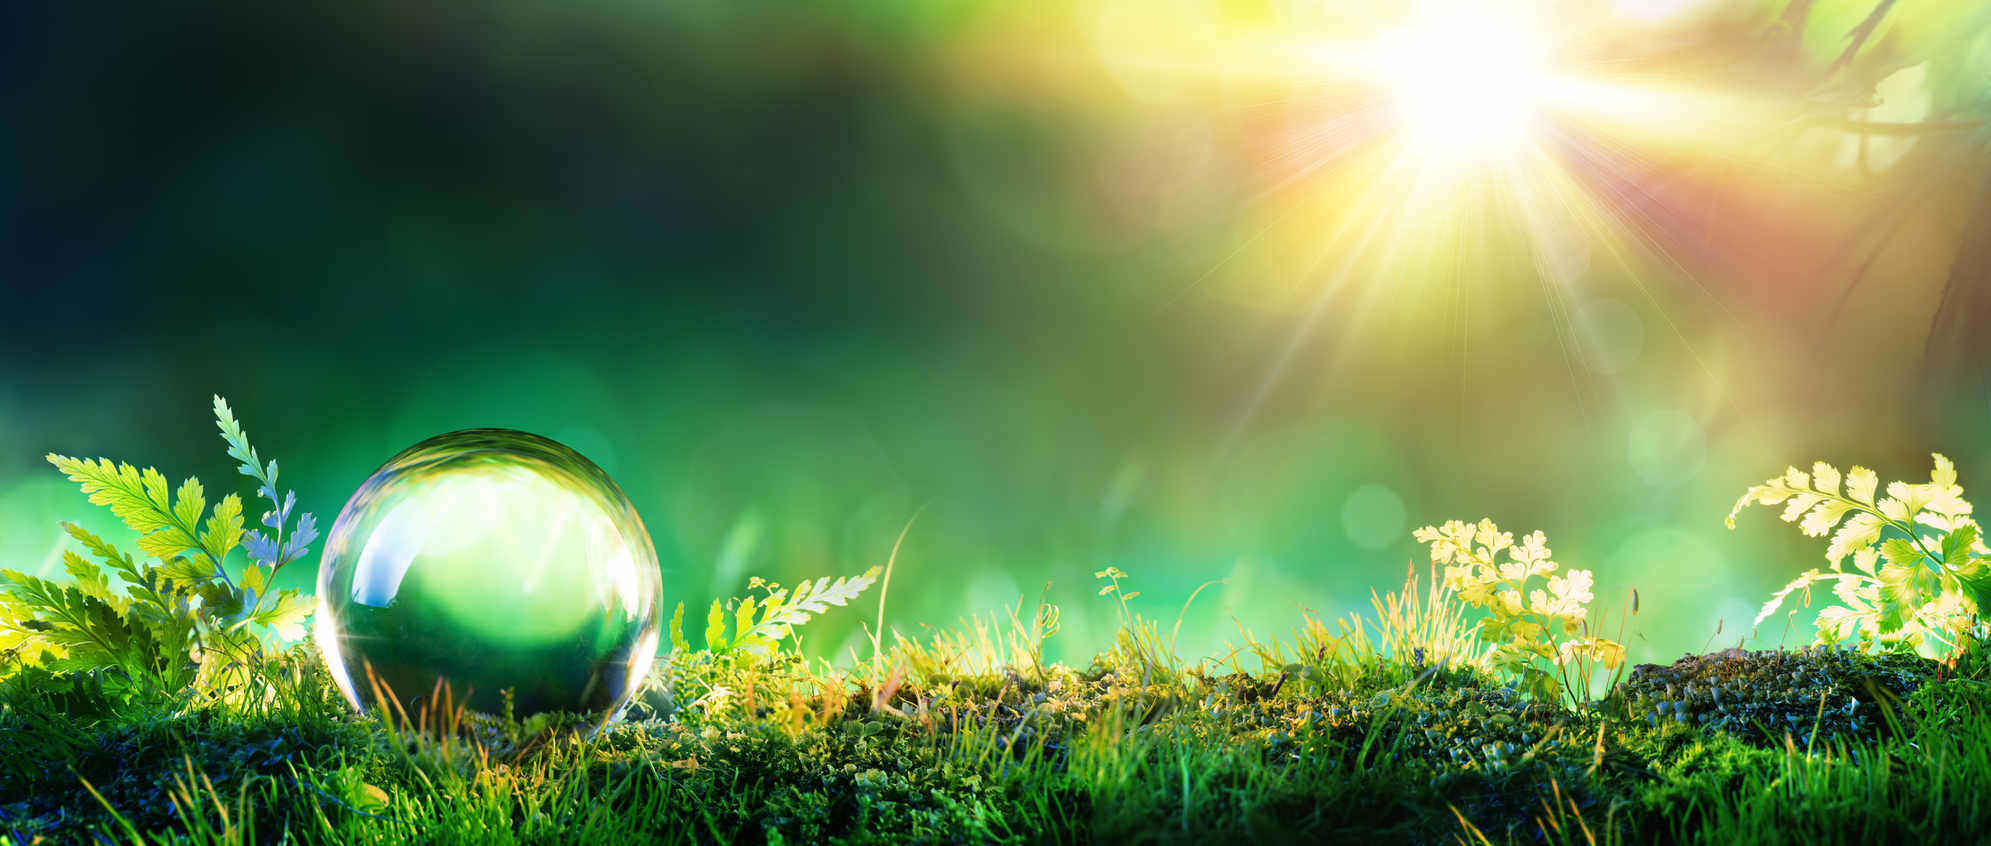 a crystal green globe lying on a moss bed with shining sun